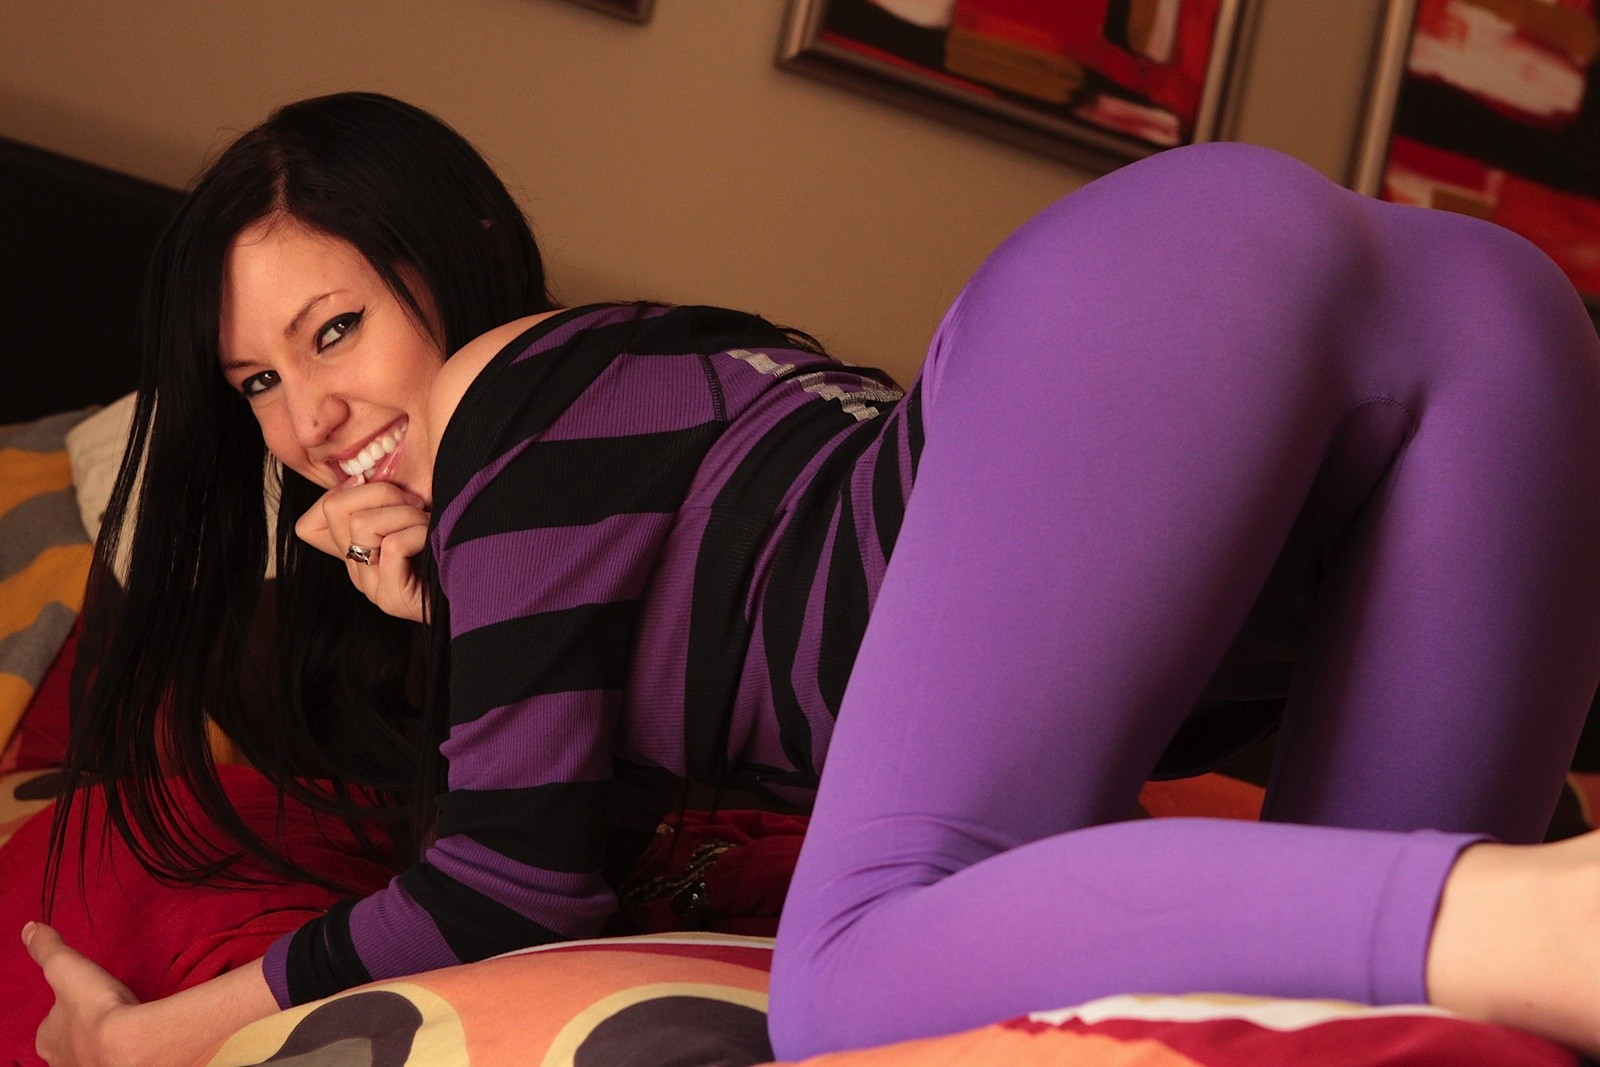 Lewd amateur geek catie minx in glasses and tense purple